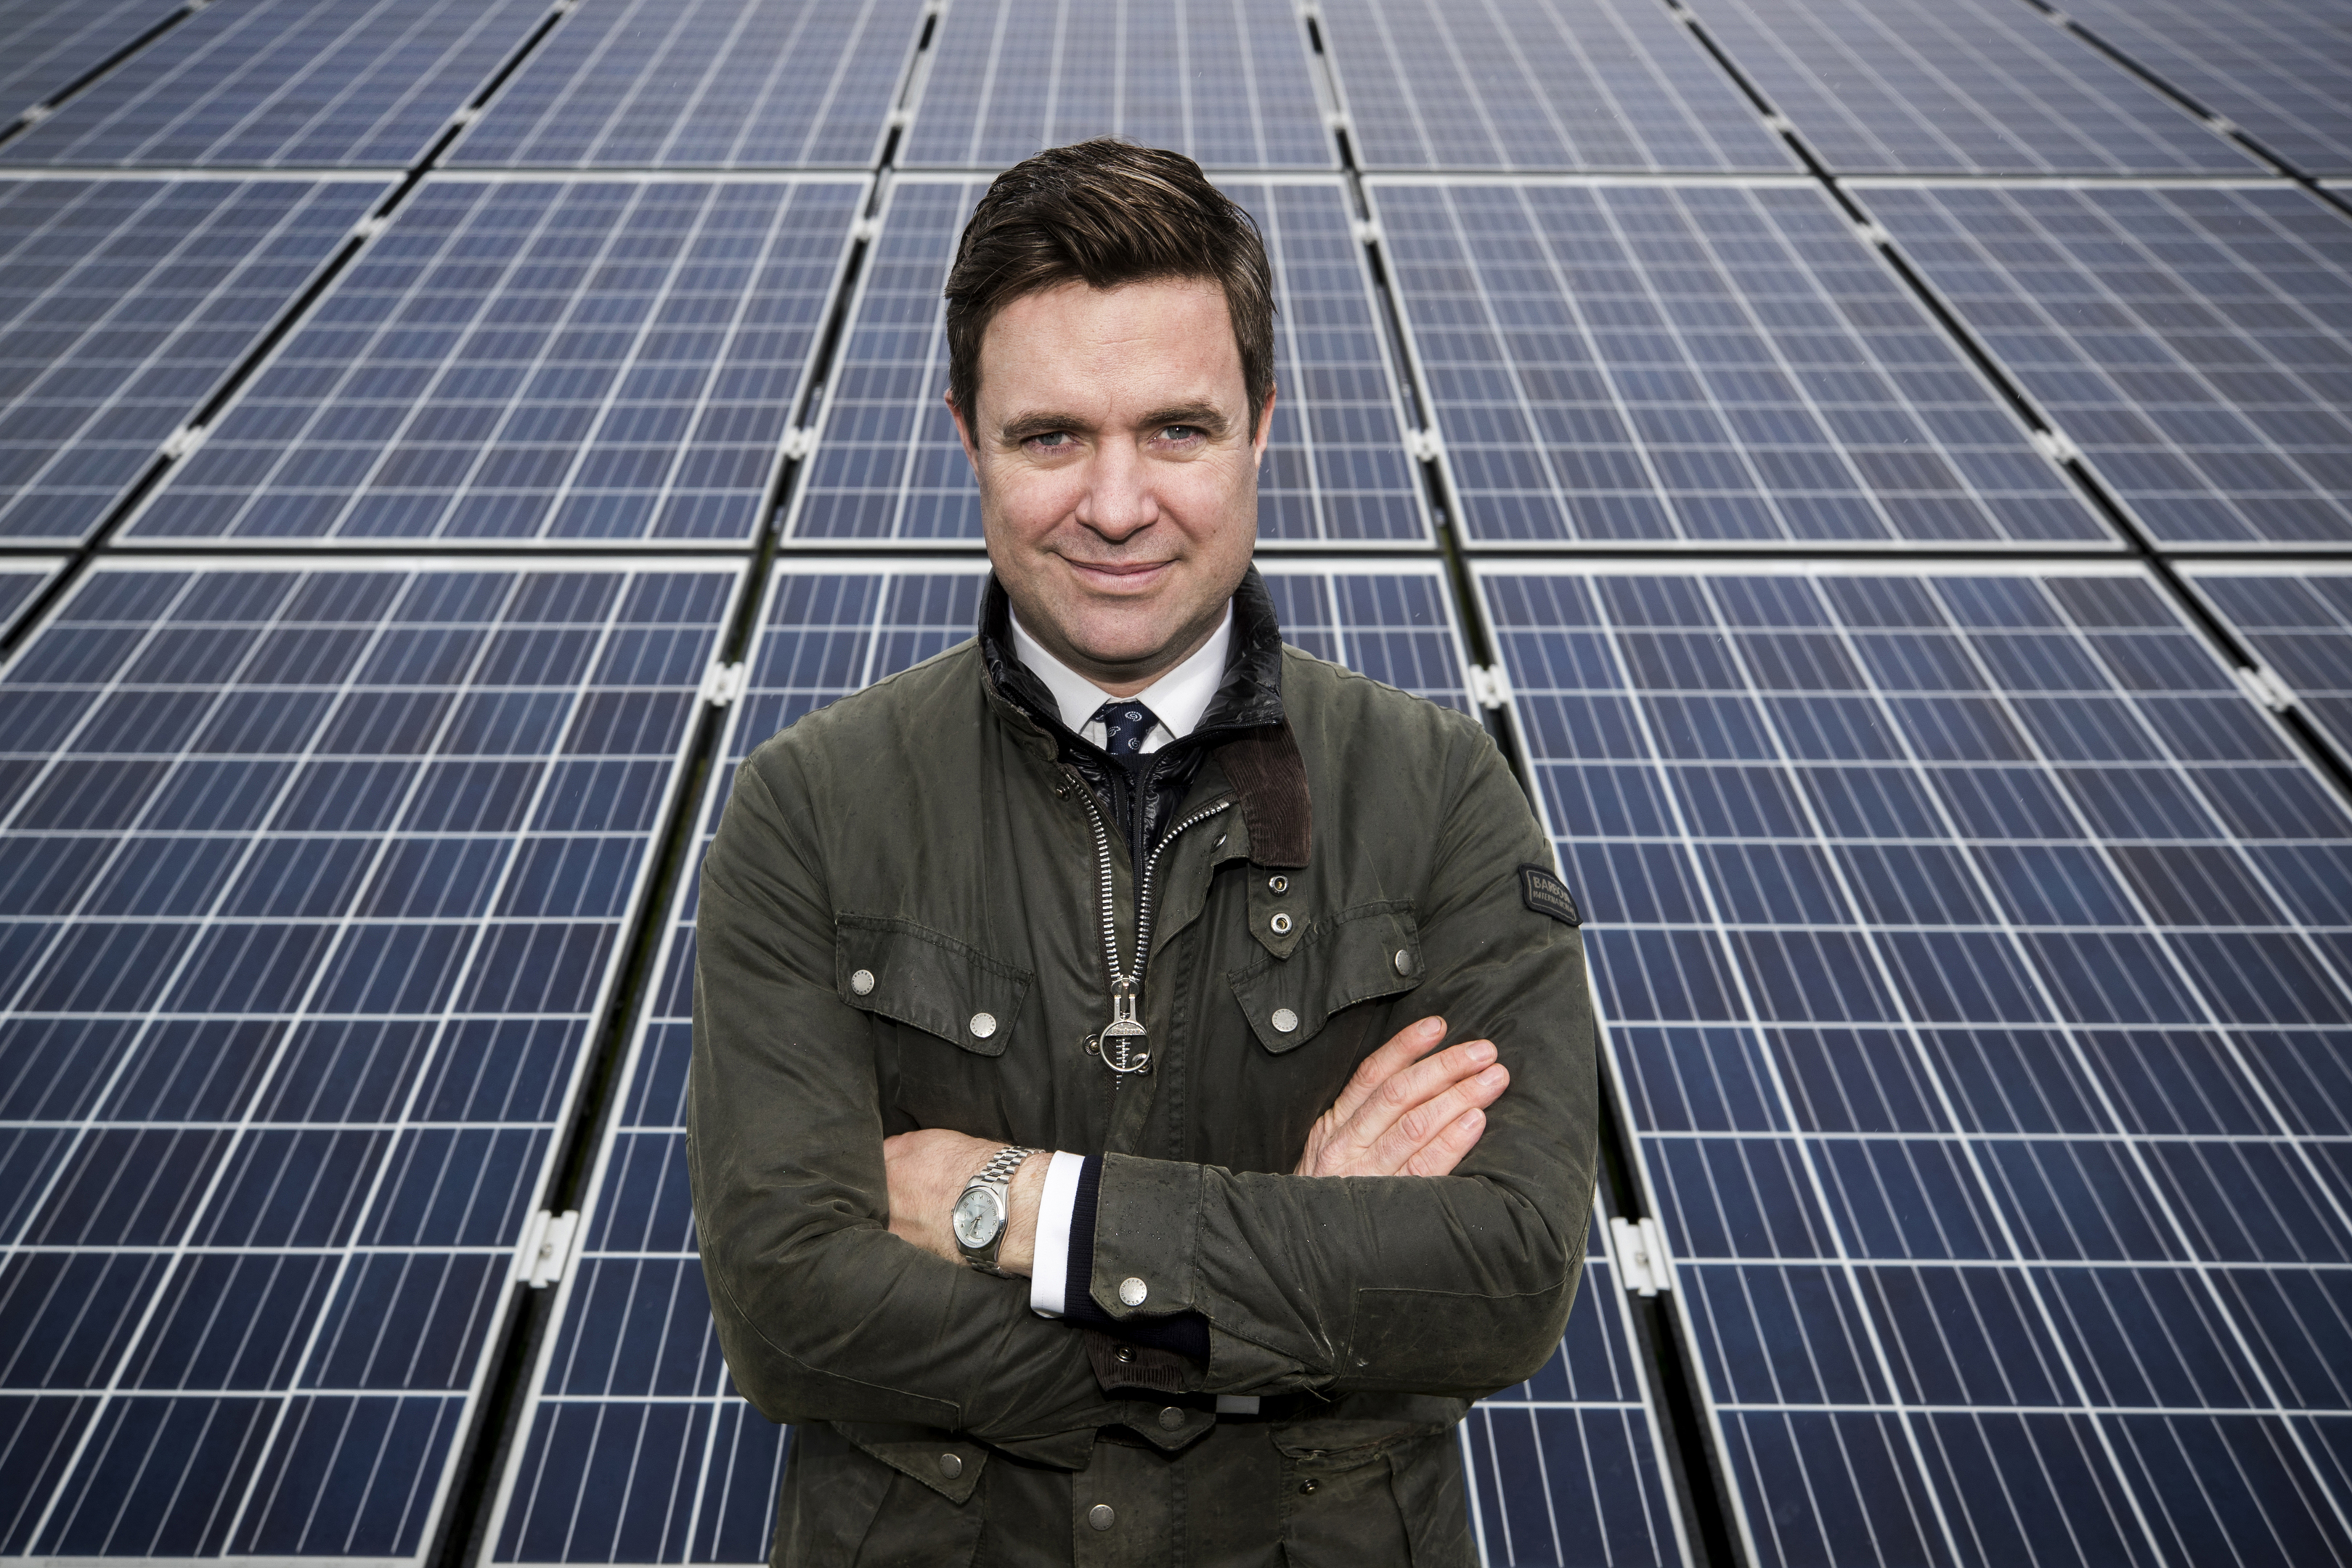 Ronan Kilduff, managing director of Elgin Energy at the Bann Road project in Antrim, their largest solar farm to date in Northern Ireland. Tuesday 10th April 2018. Liam McBurney/RAZORPIX ©